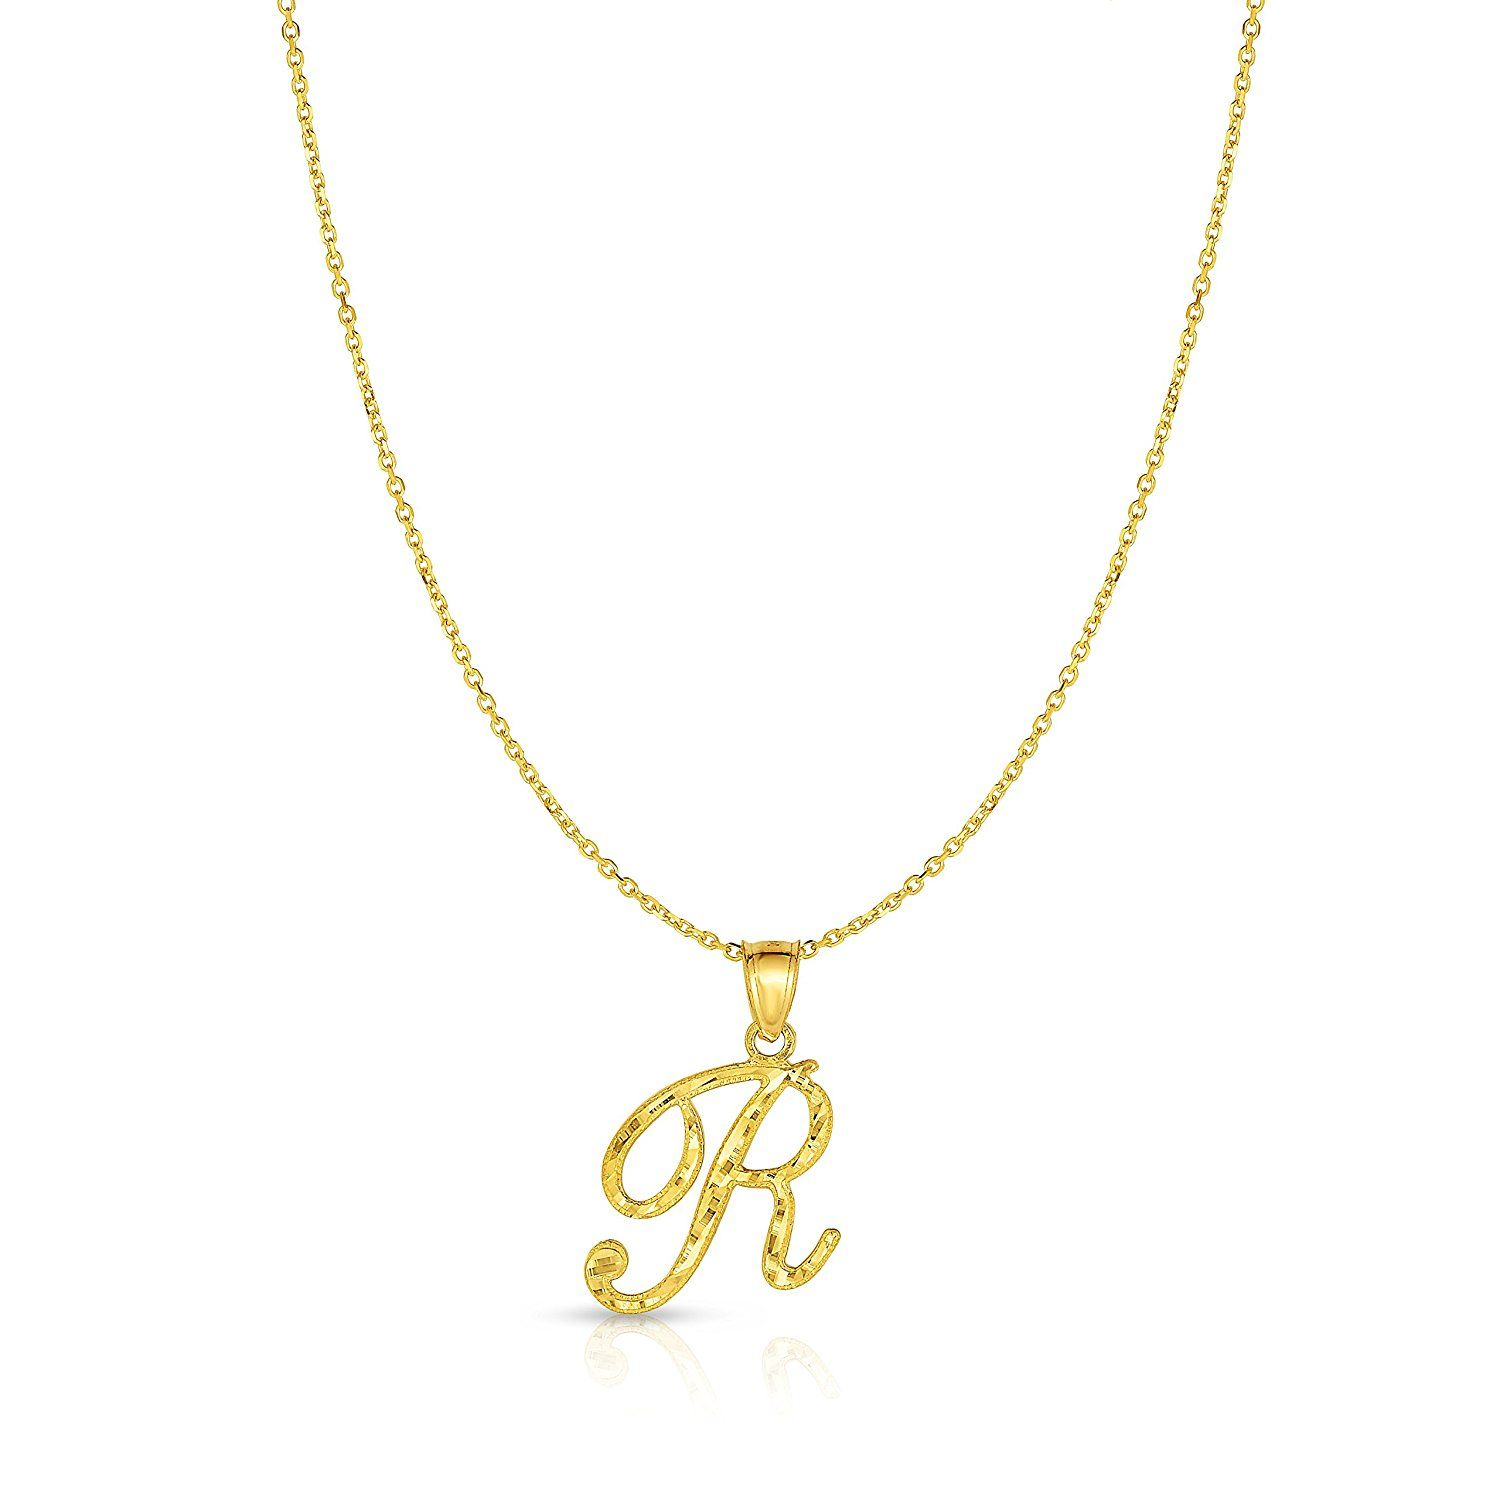 K yellow gold charm pendant necklace w letter az personalized